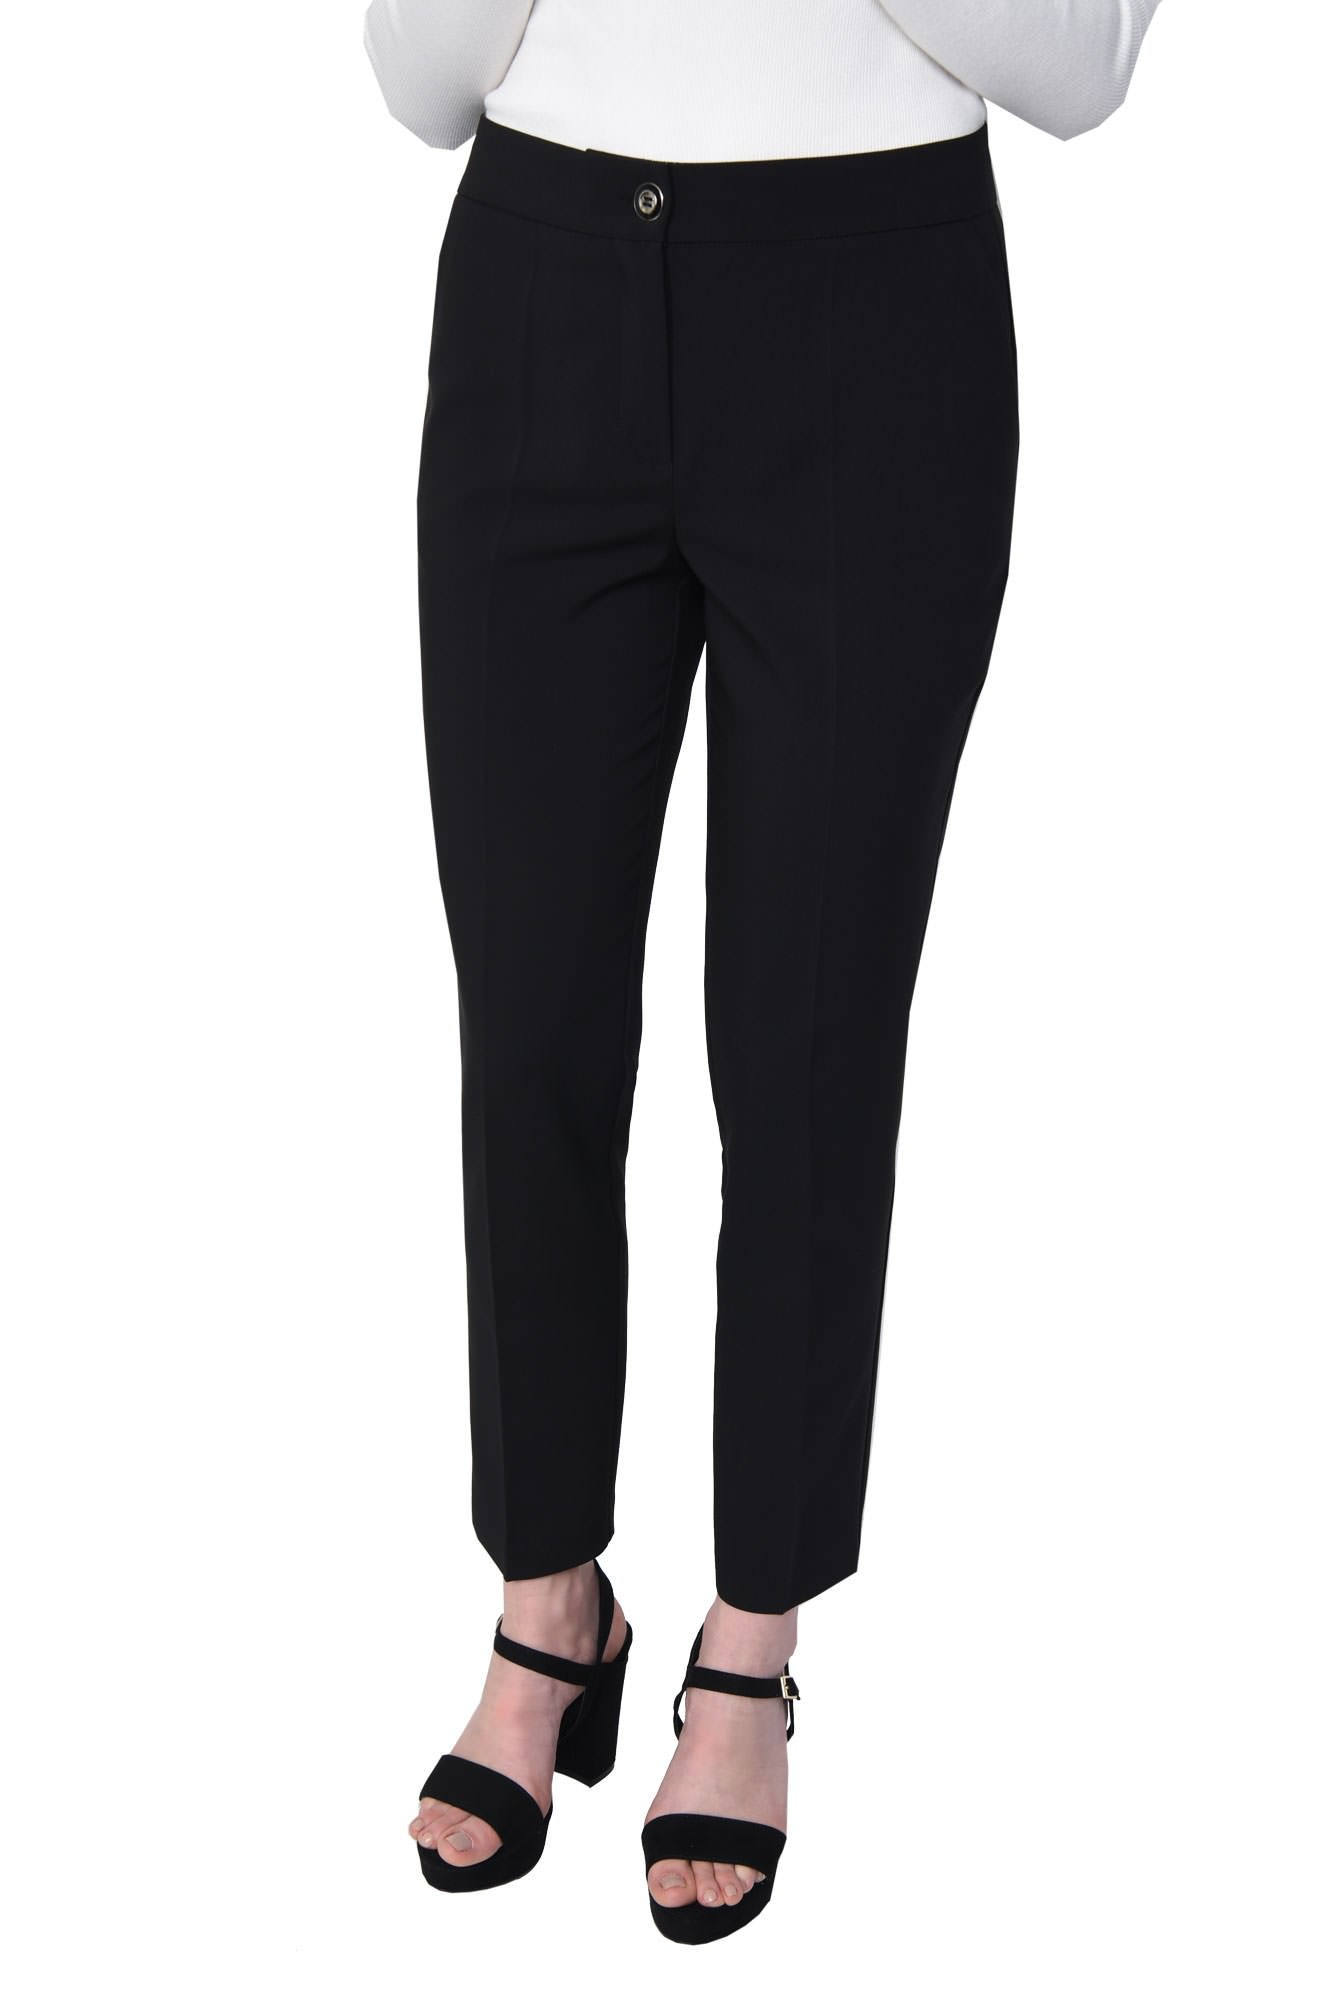 PANTALON OFFICE CONIC PT 138-NEGRU